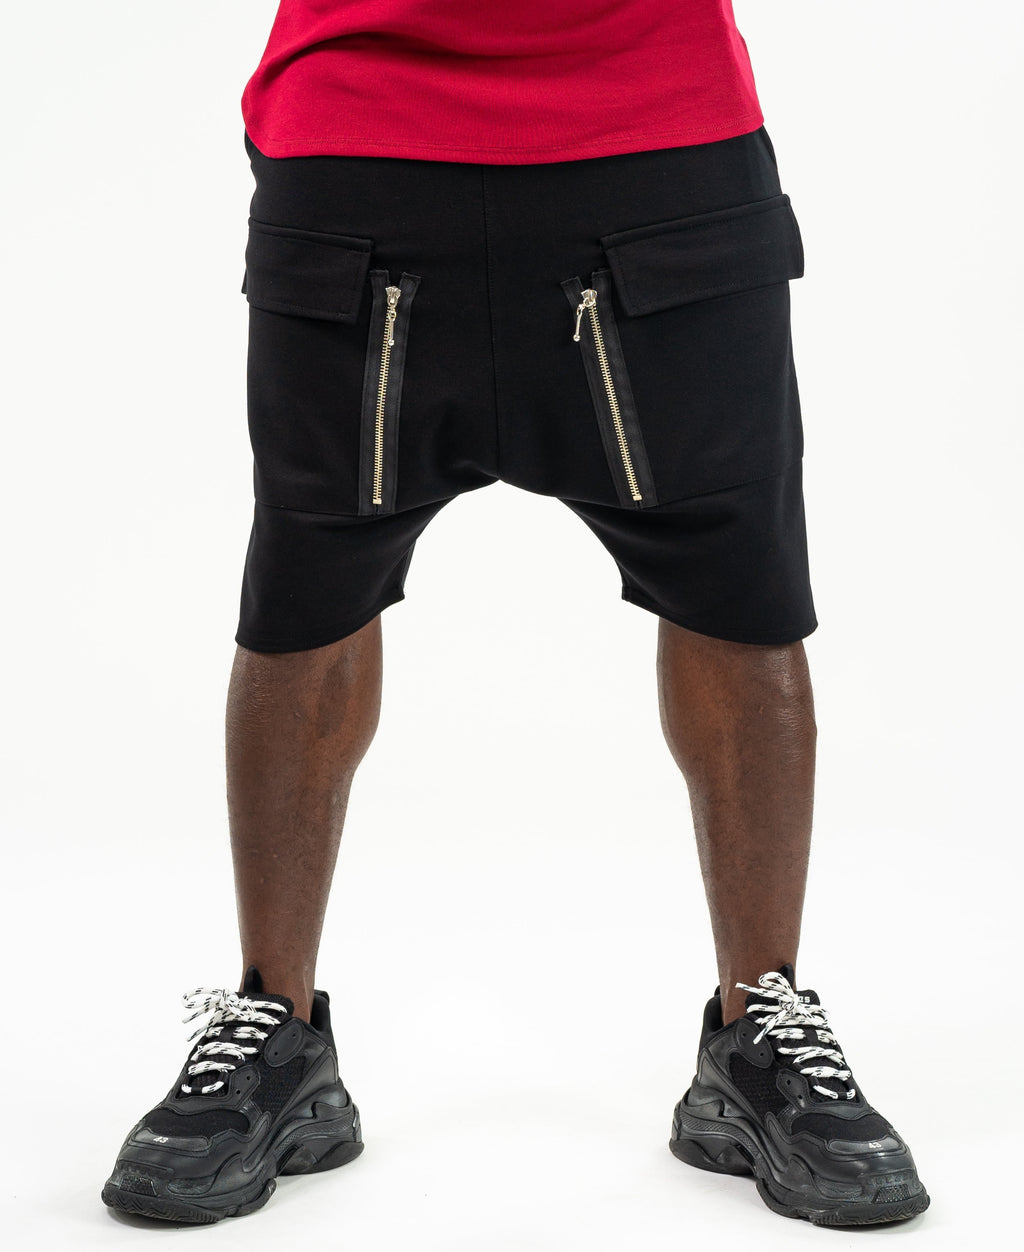 Short Black Trousers with silver zip - Fatai Style